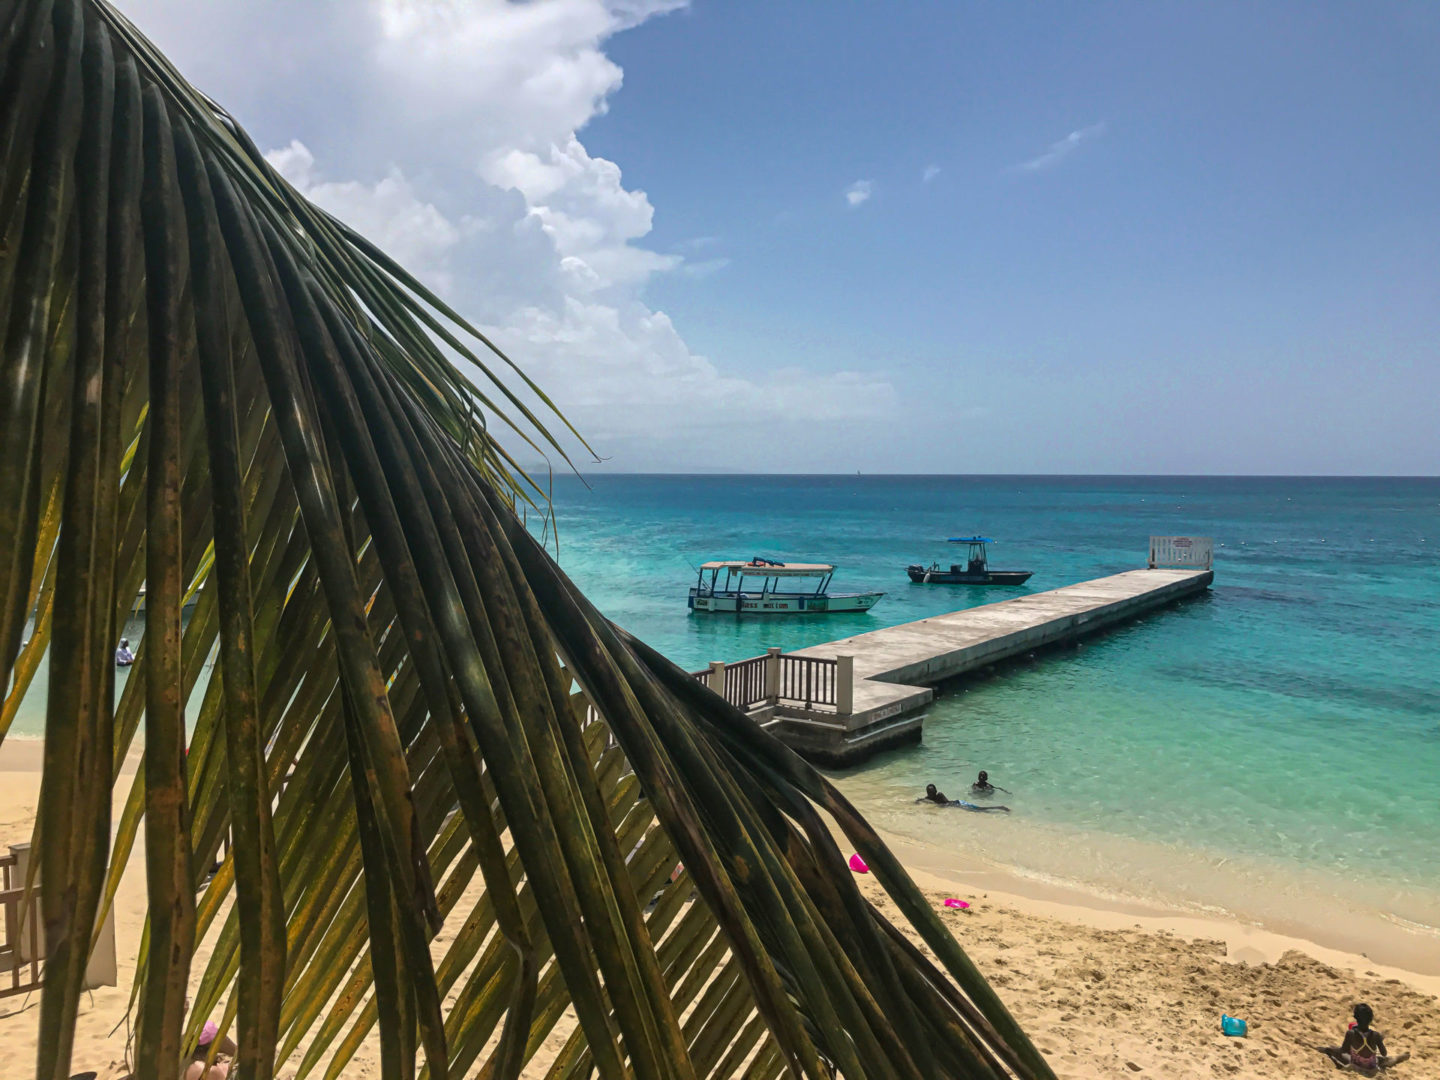 Montego bay Beach Doctor's Cave Travel Blog image robbienroute